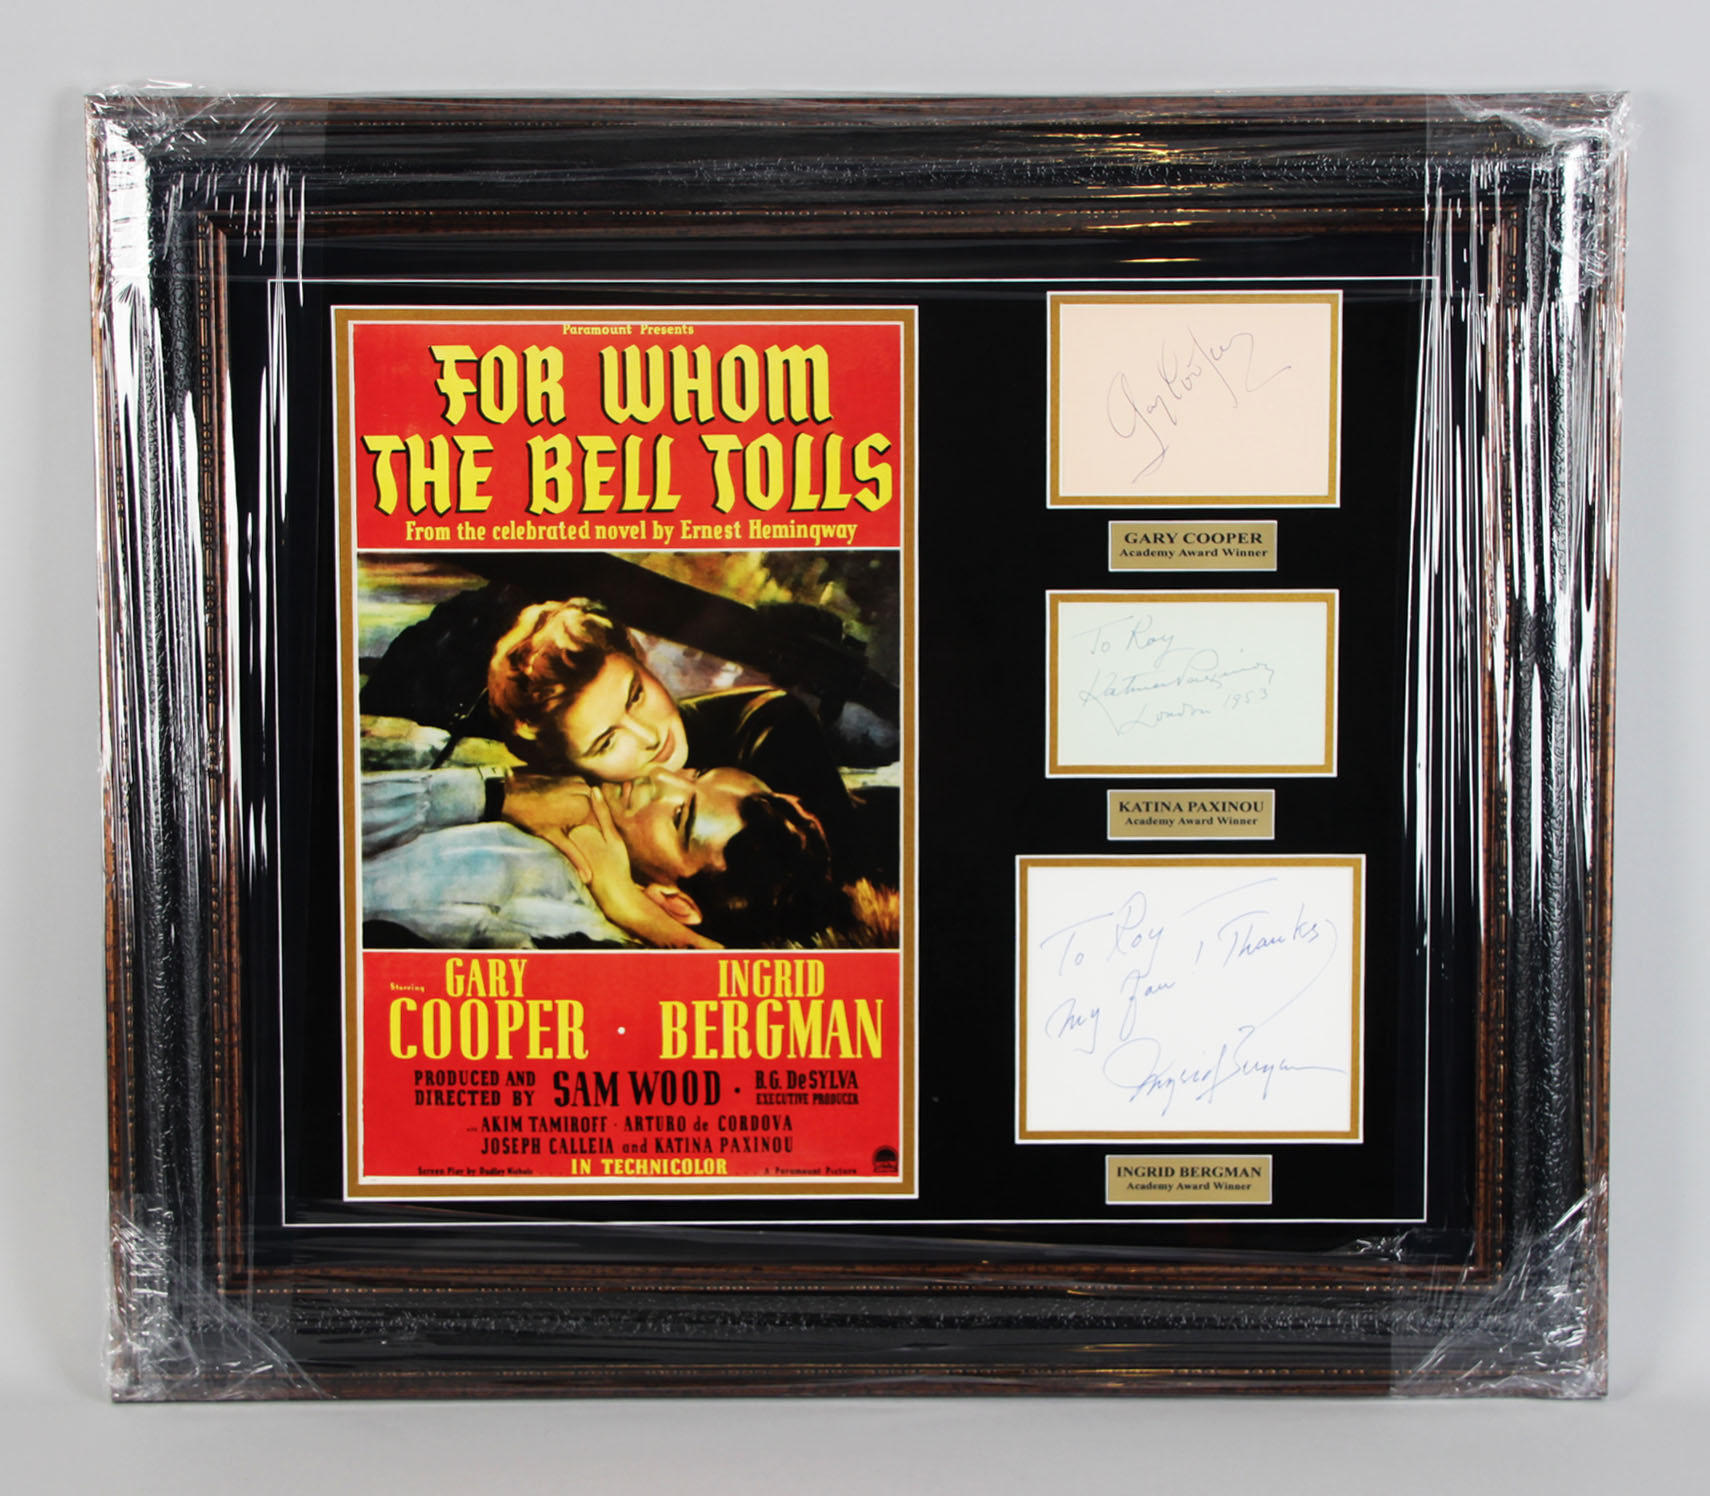 1943 For Whom the Bell Tolls Signed Cut 25x28.5 Display- Gary Cooper, Katina Paxinou & Ingrid Bergman - JSA Full LOA